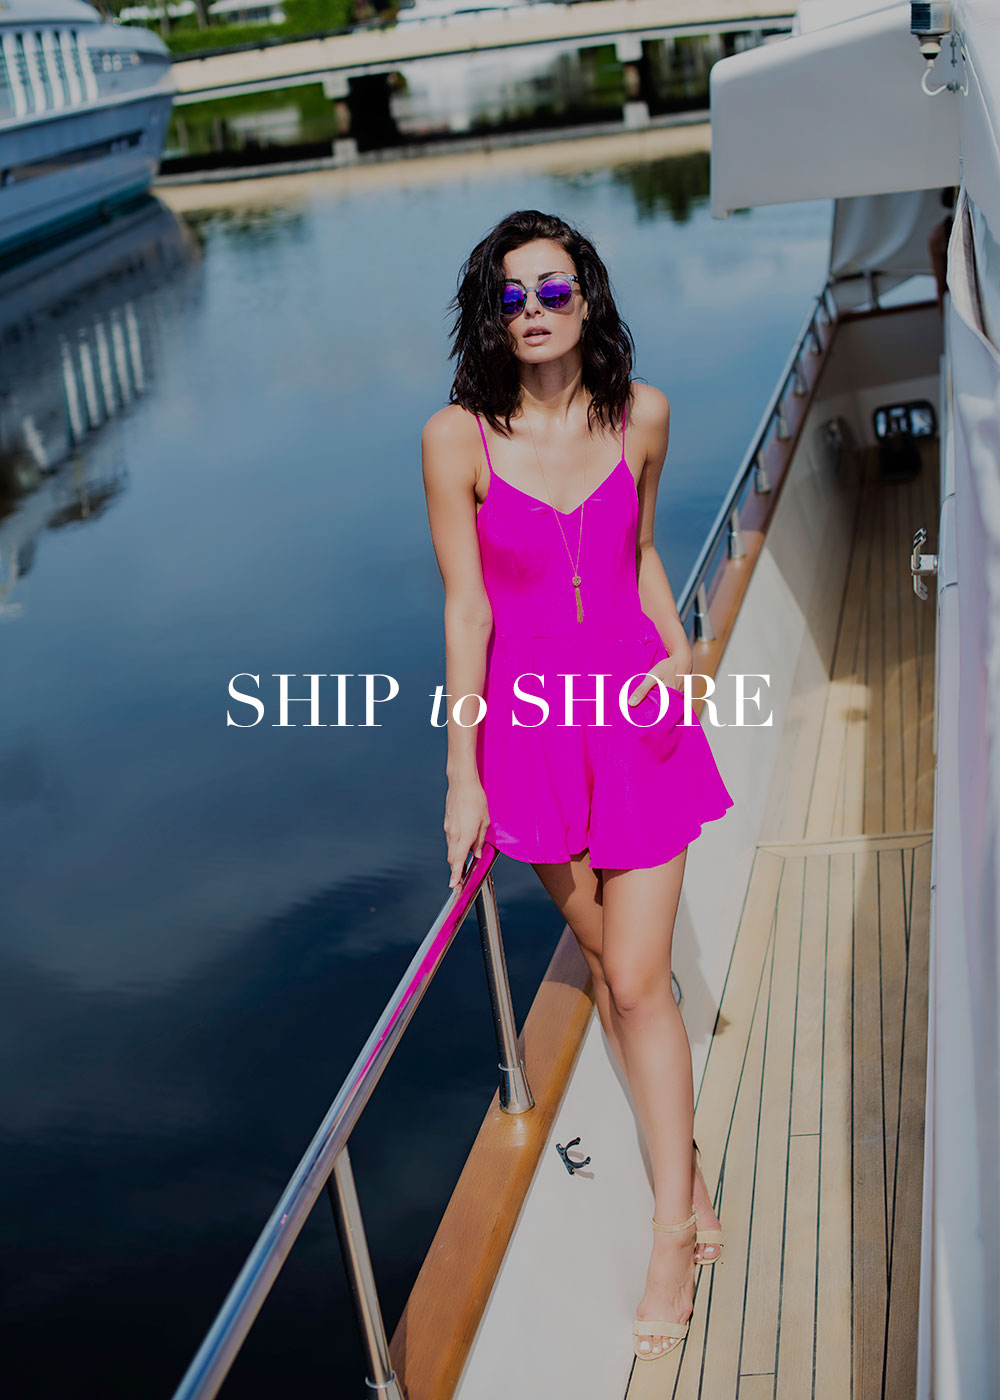 Stylish Woman on Yacht